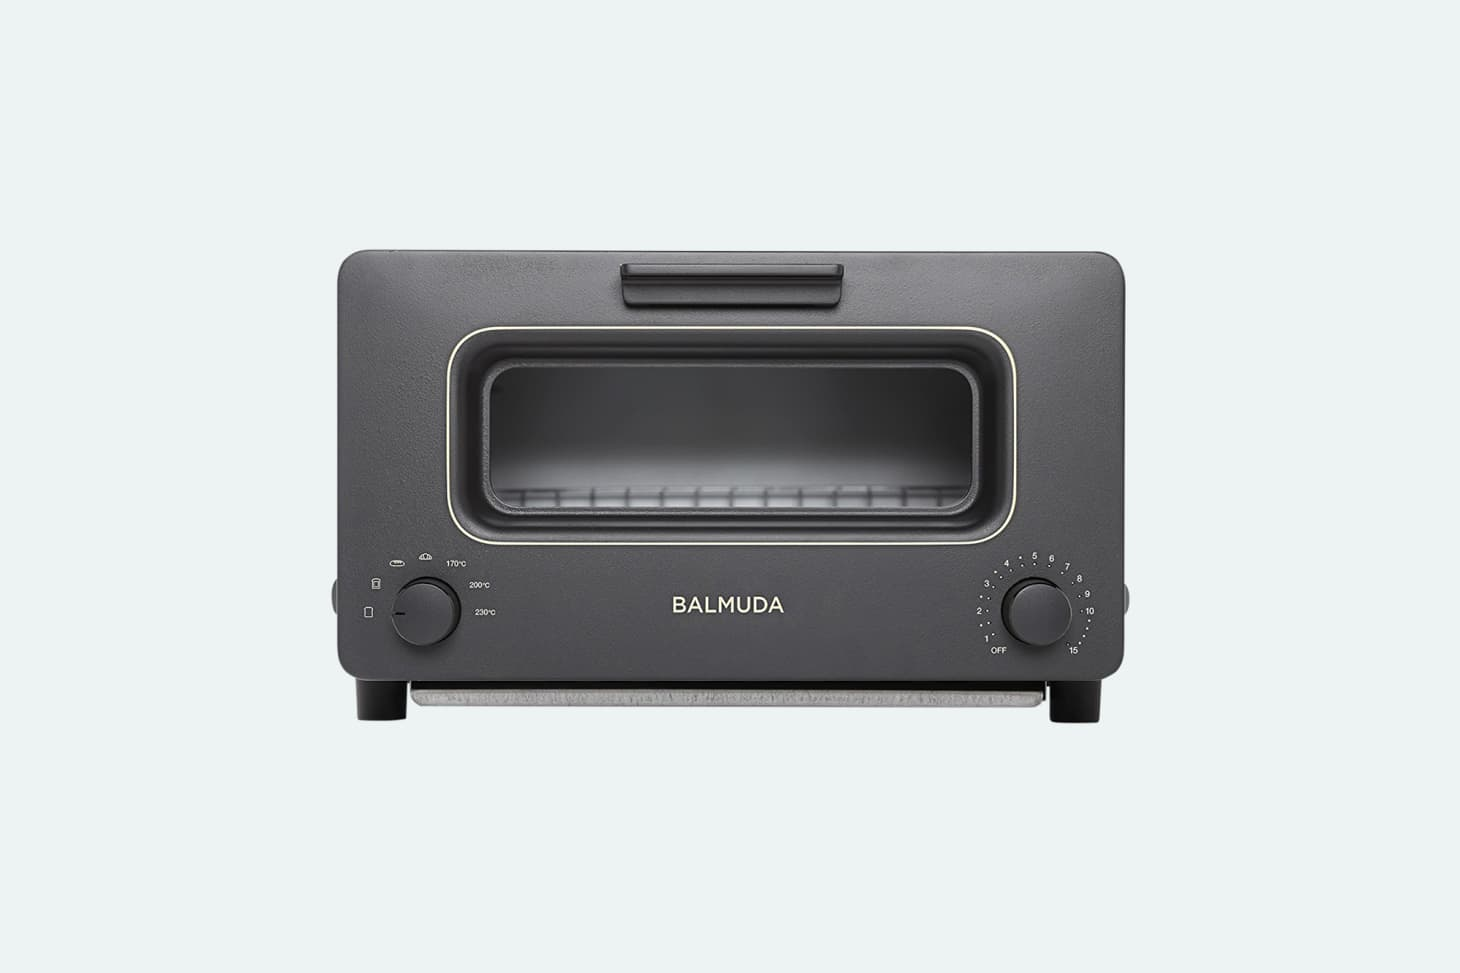 The Best Toaster Ovens of 2018 - Top Rated Reviews | Apartment Therapy